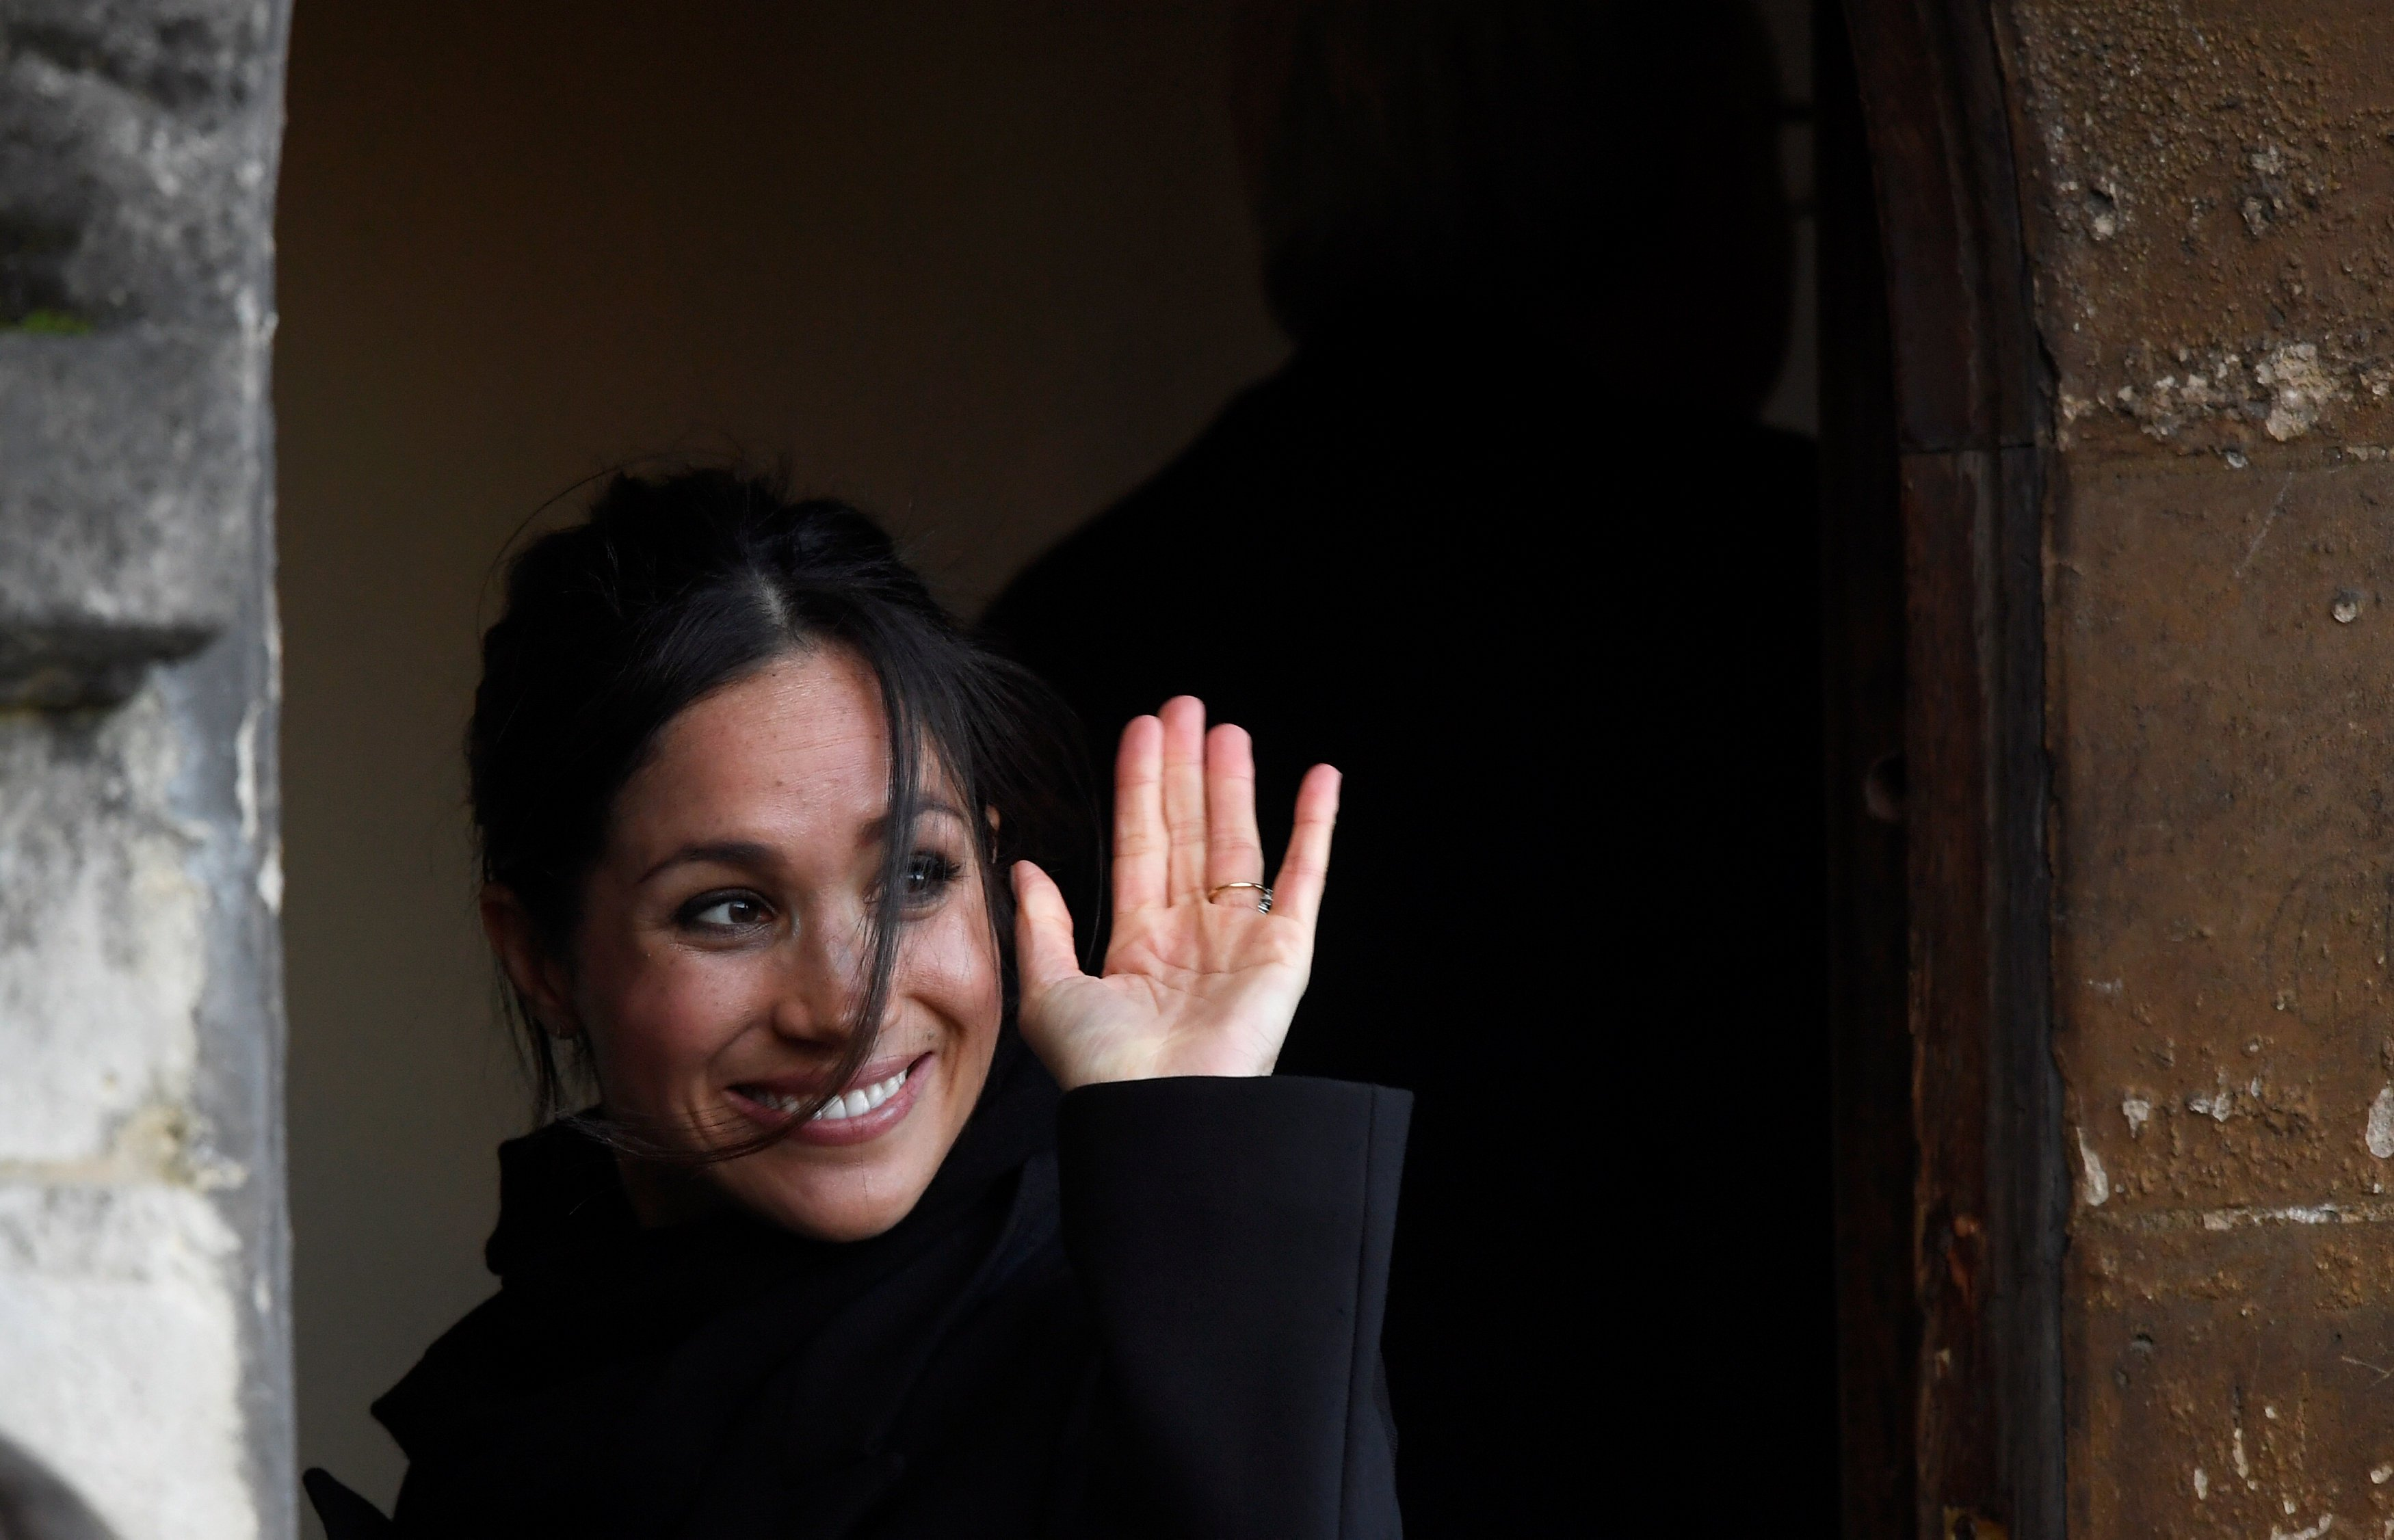 Meghan Markle greets well-wishers during a visit to Cardiff Castle with her fiancee Britain's Prince Harry in Cardiff, Britain, January 18, 2018. REUTERS/Toby Melville